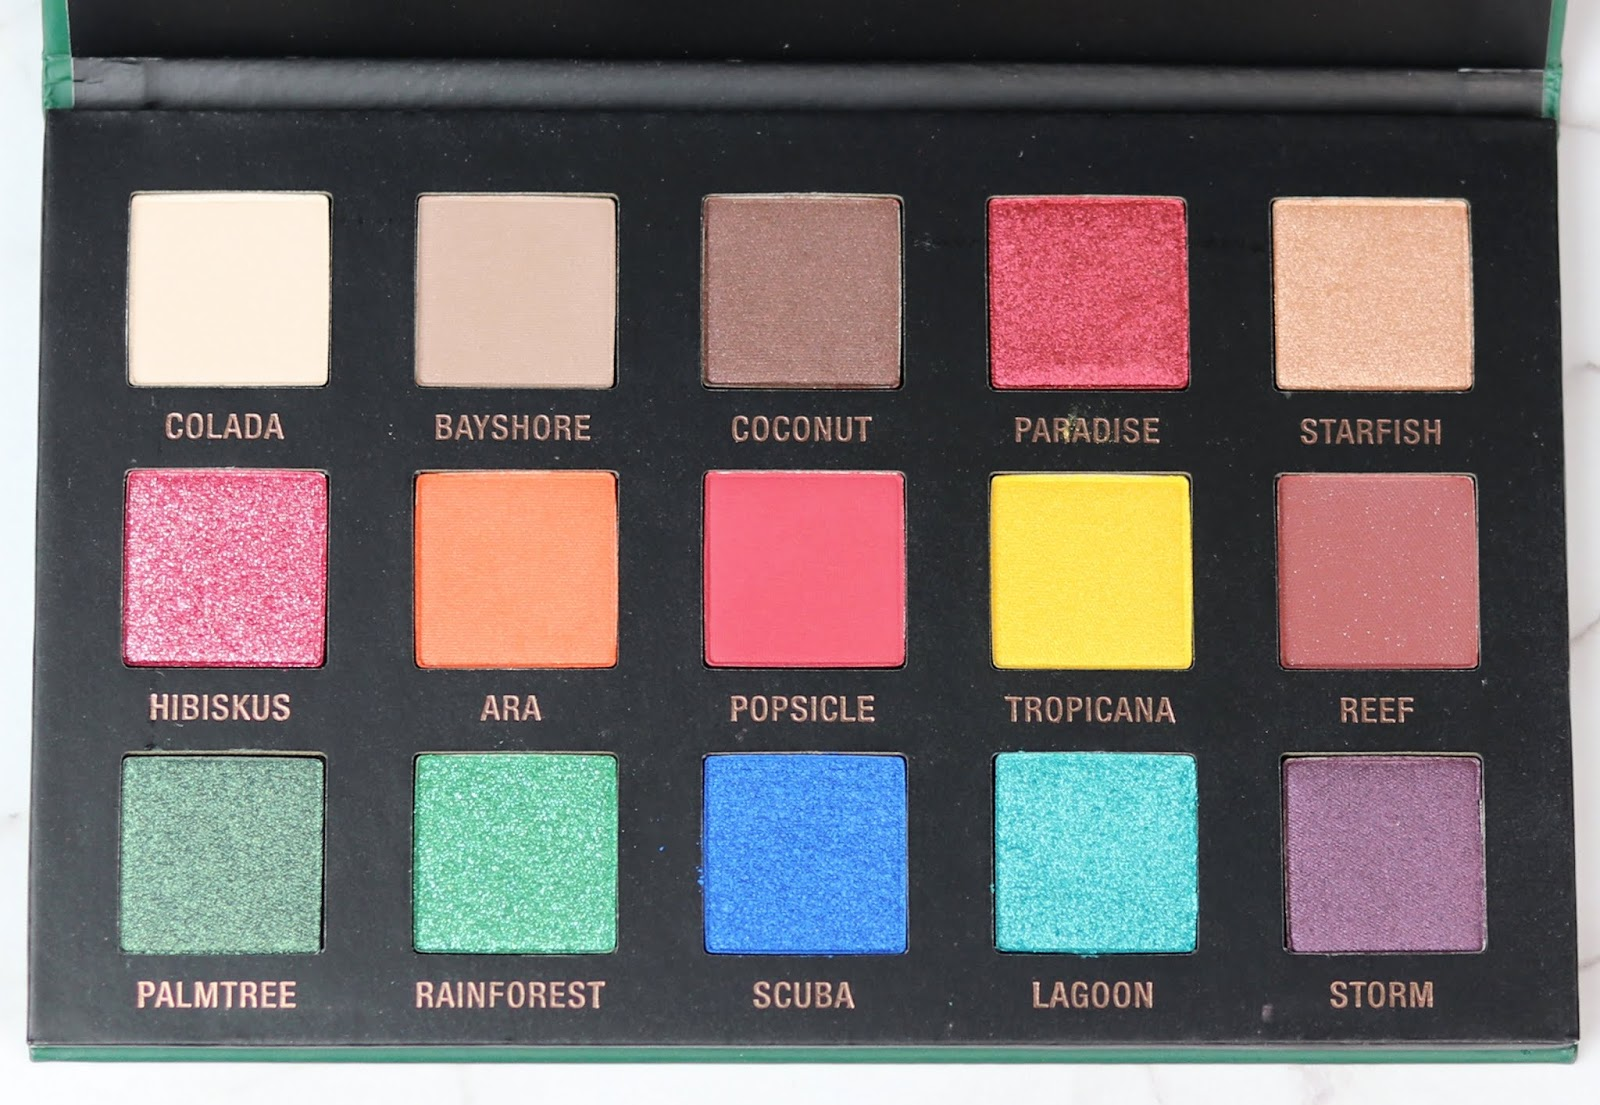 amu, beauty blogger hamburg, buntes make-up, drogerie, Eyeshadow Palette, L.O.V Lidschattenpalette EYEvotion extended PARADISE edition, lidschatten, review, sommer look, swatches, tragebilder,